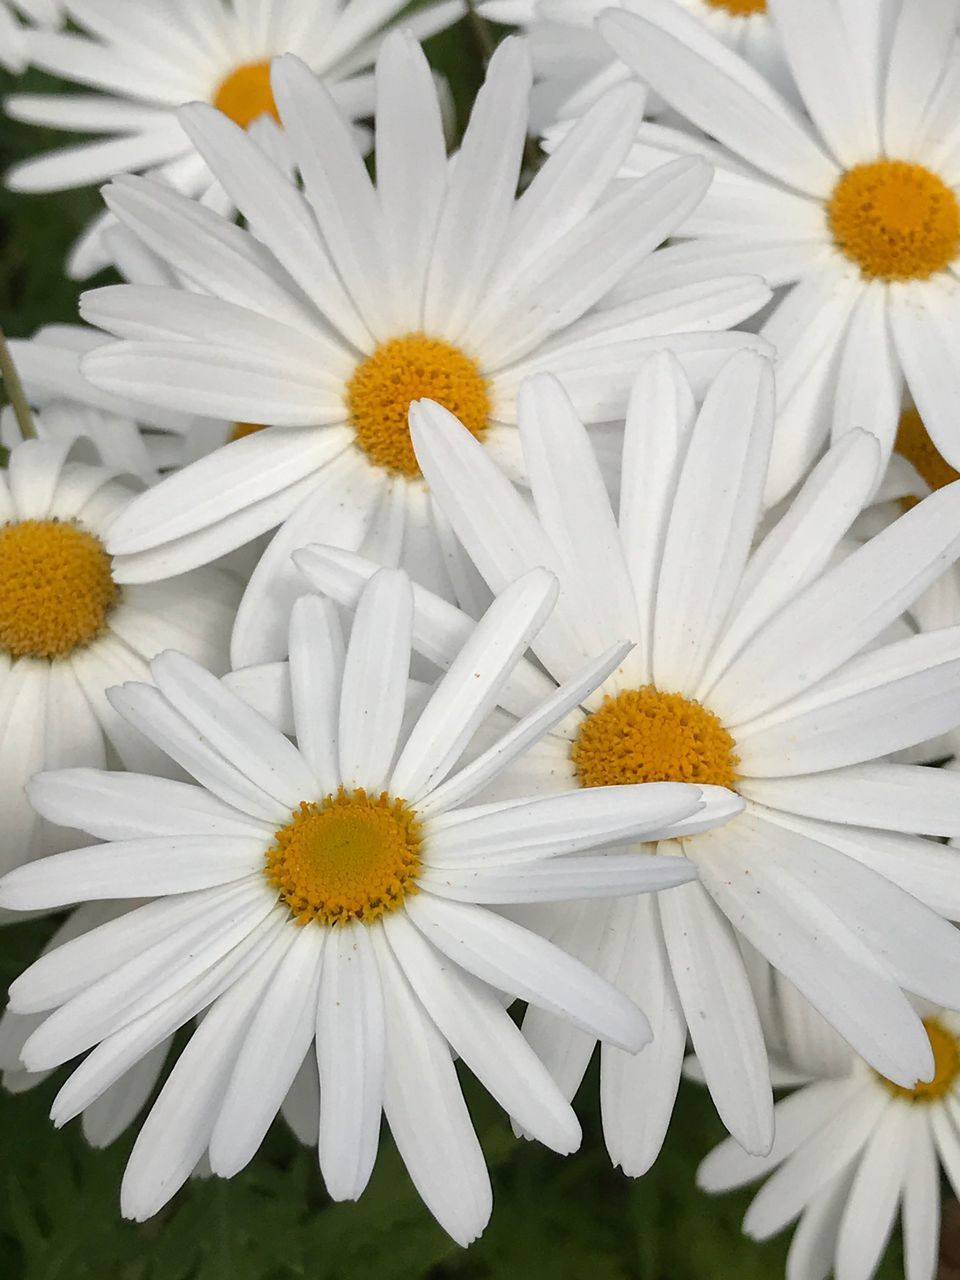 CLOSE-UP OF WHITE DAISY FLOWERS IN BLOOM